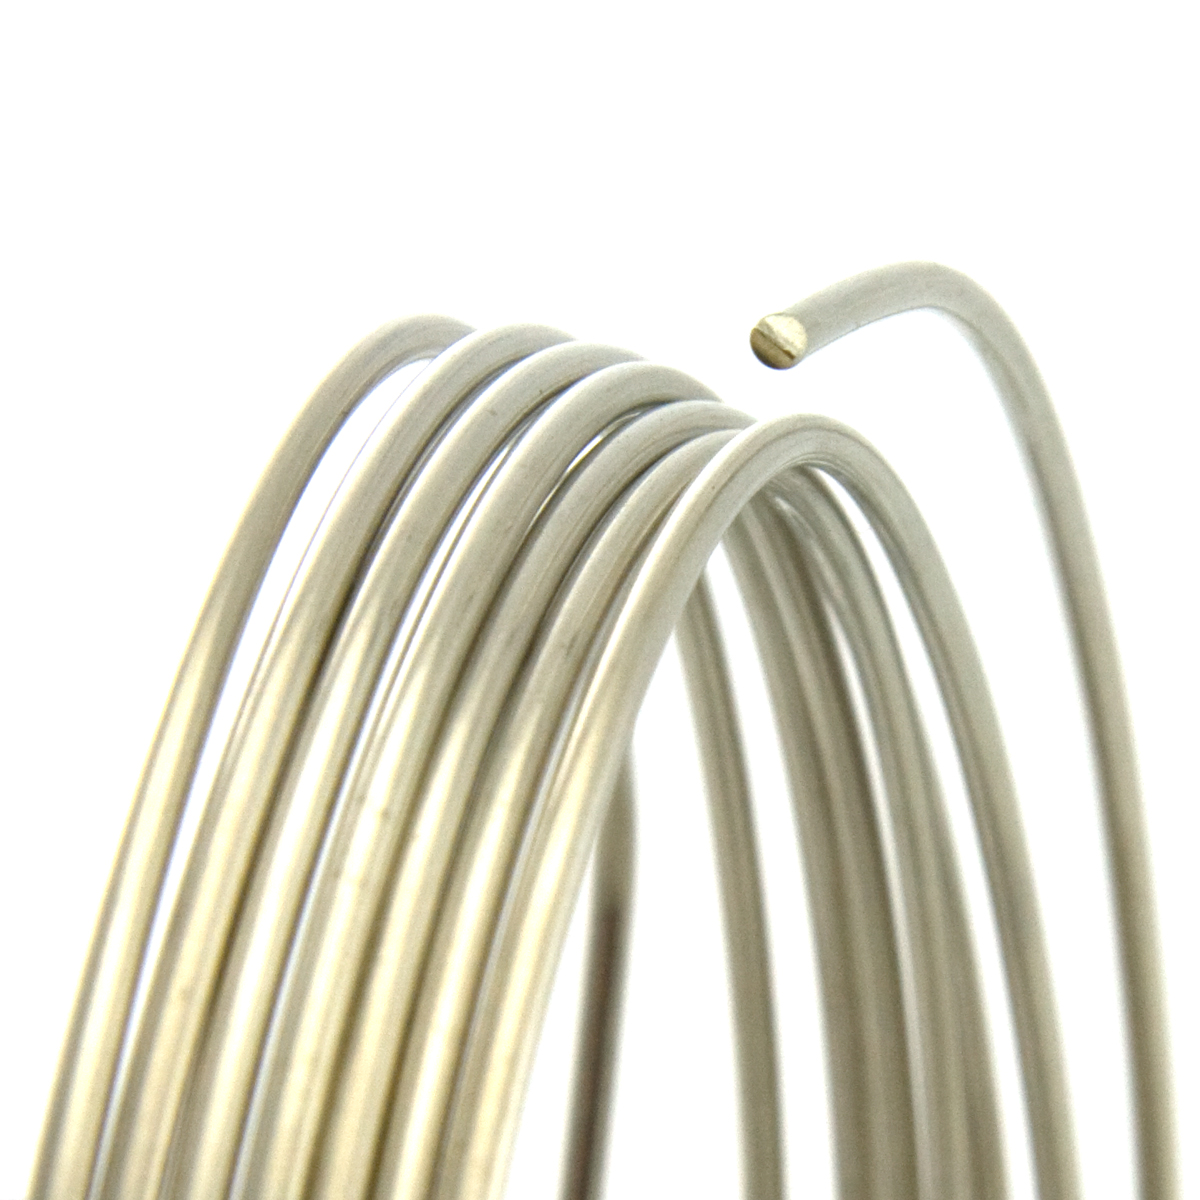 14 Gauge Round Dead Soft Nickel Silver Wire: Wire Jewelry